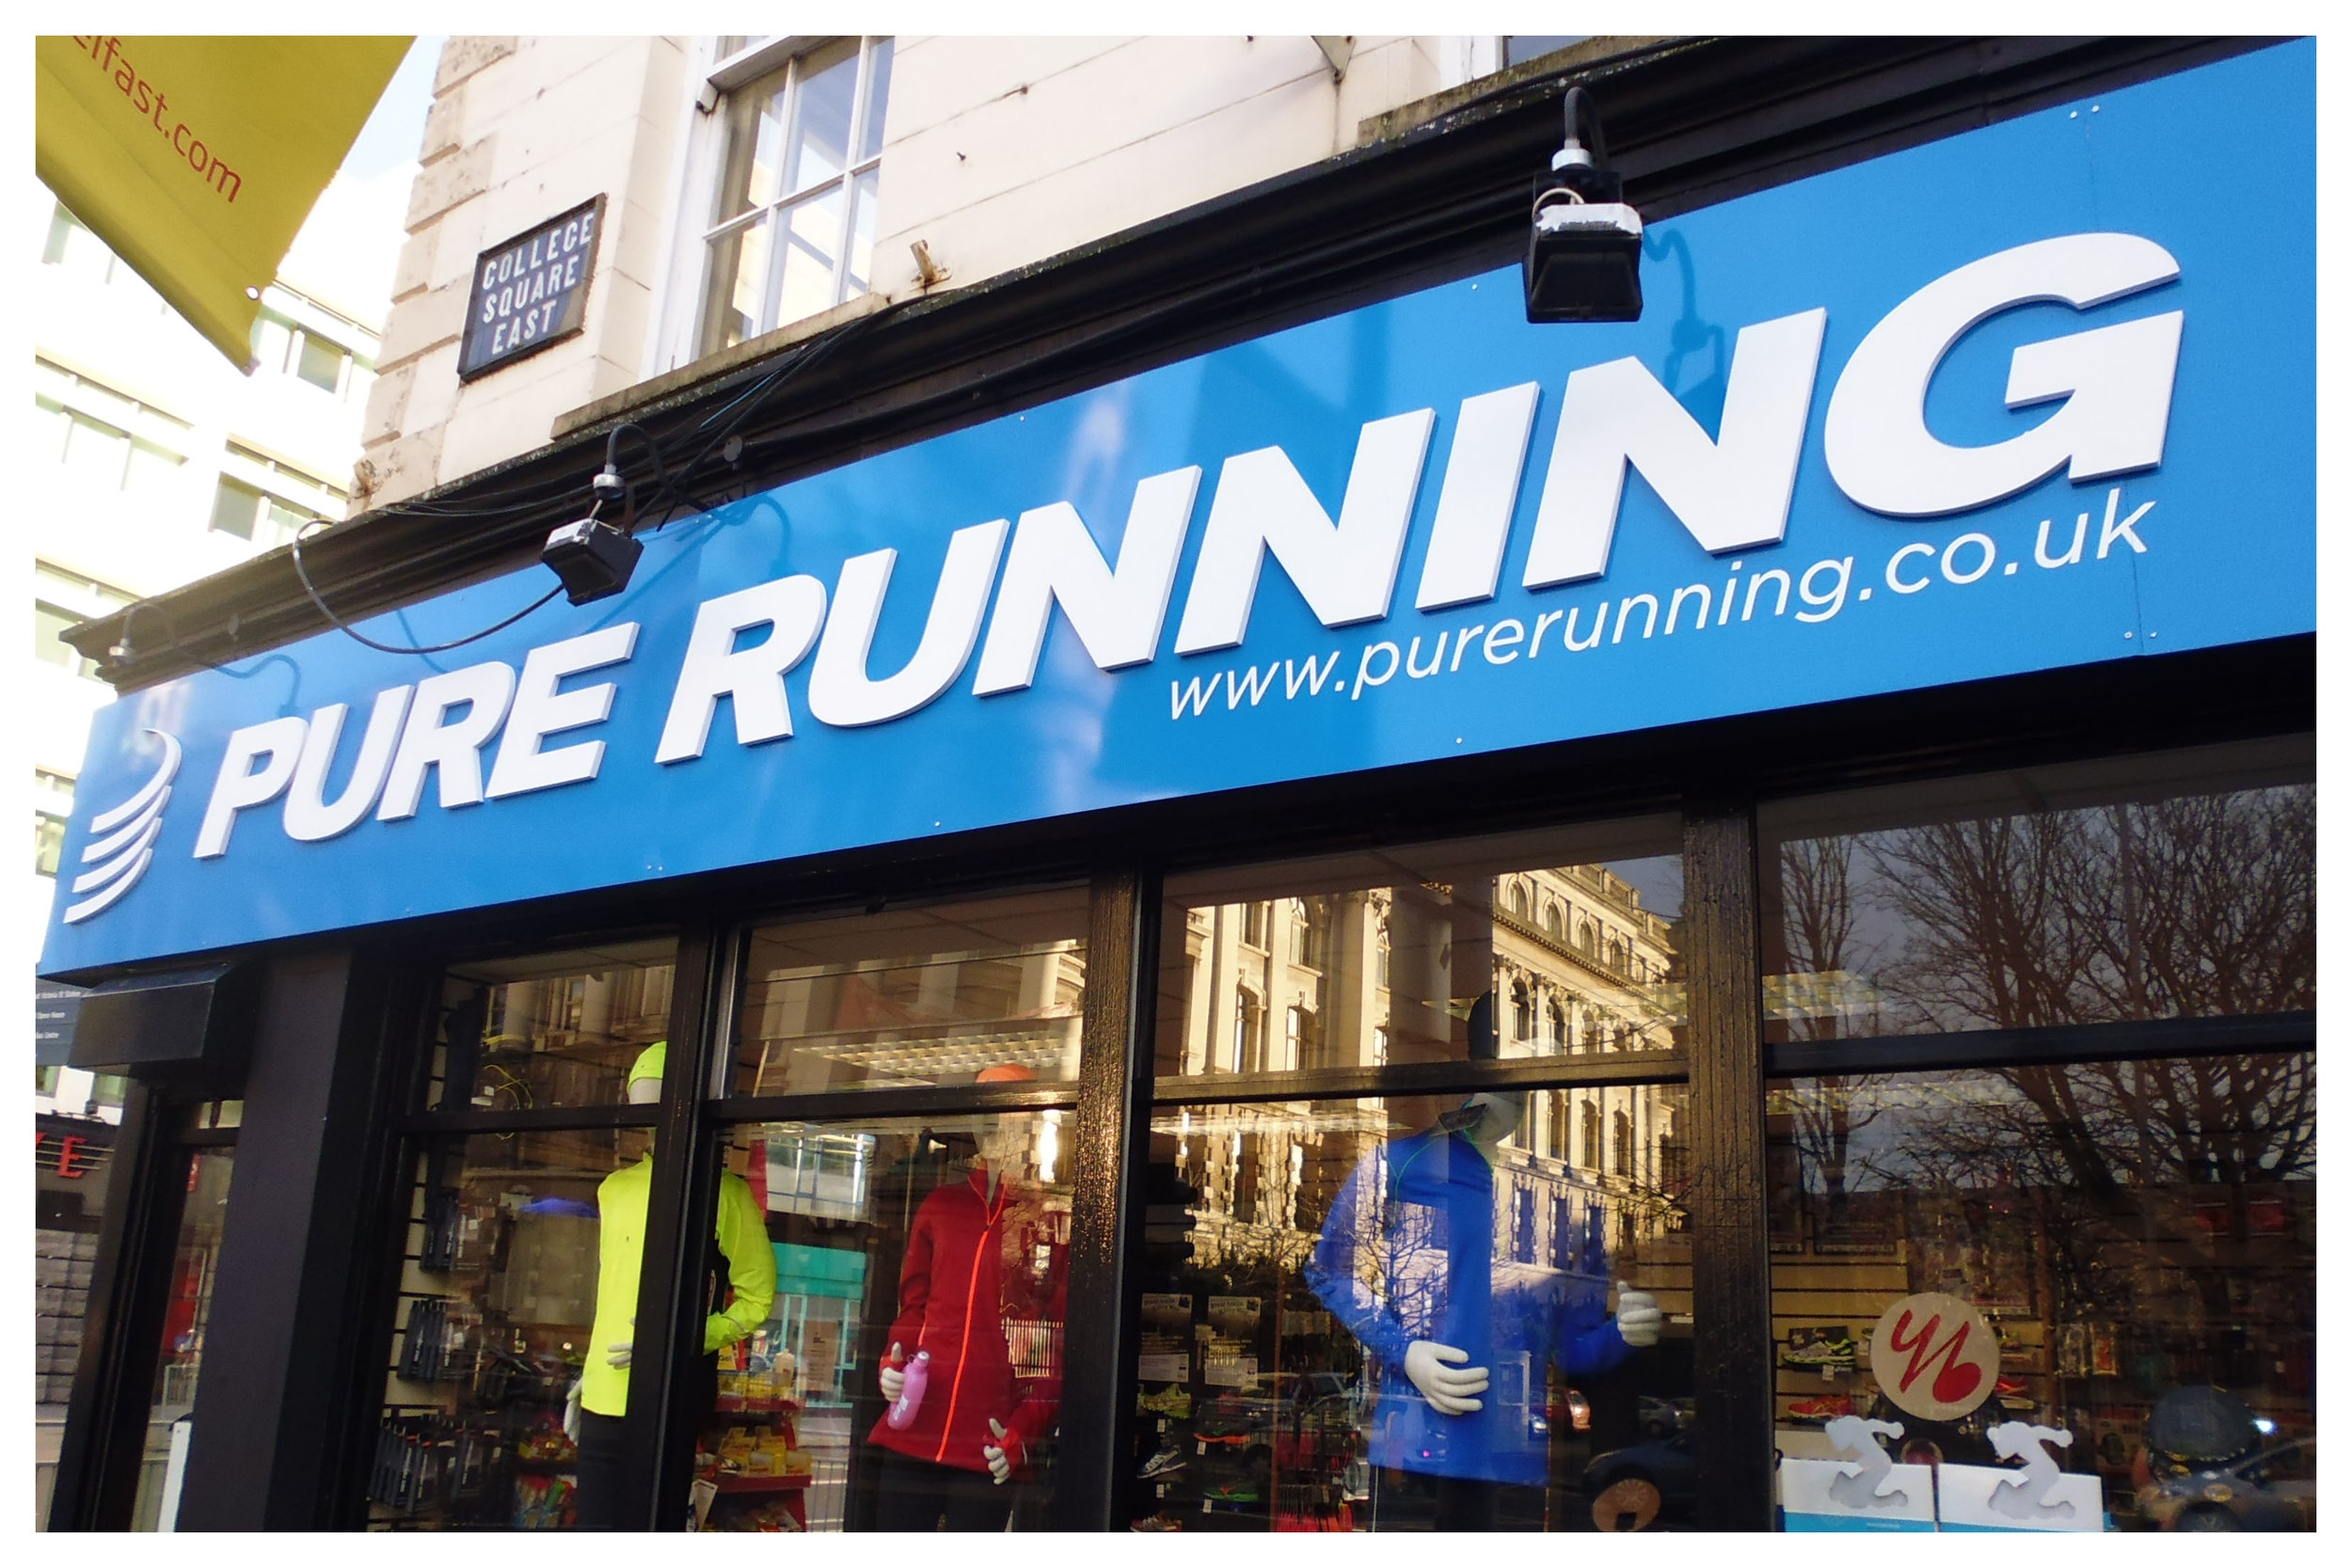 Pure Running   Pure Running, based in the City Centre, is one of NI's leading running specialist shops and staffed by runners.   A: 60 Wellington Place, Belfast BT1 6GF   E:  shop@purerunning.co.uk    T: 028 9032 5151   W:  www.purerunning.co.uk    Twitter: @purerunningshop   Additional Information: Wide range of trainers available along with digital-gait analysis in-store. Involved in many local running events (e.g.  runher ), and can offer discounts to club members. Open 7 days a week, late Thurs